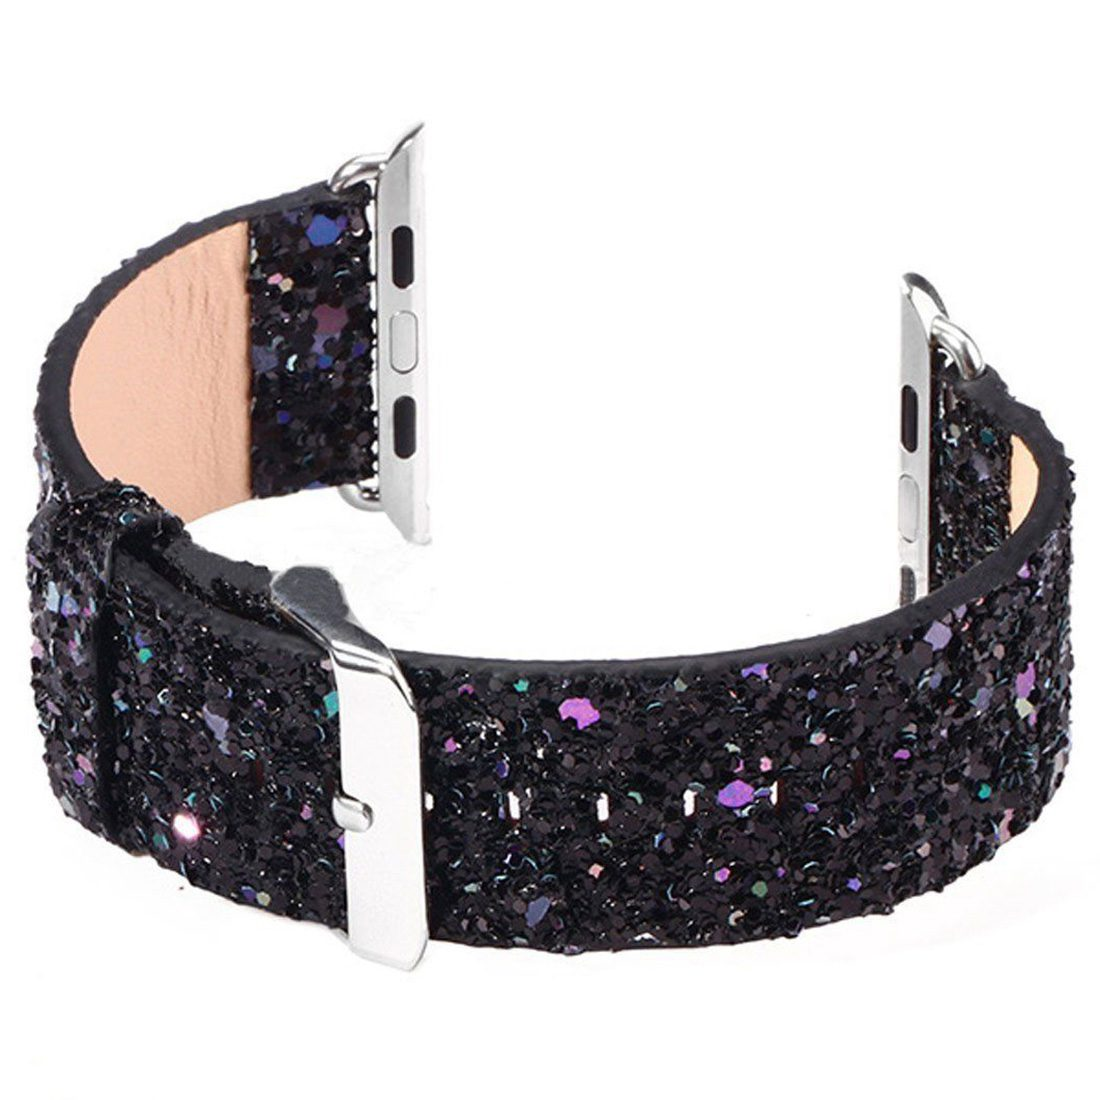 Bling Glitter Leather Watch Clasp Loop Band Strap for Apple Watch 38mm Black conkim mini car suction cup holder for car cam dvr windshield stents car gps navigation accessories